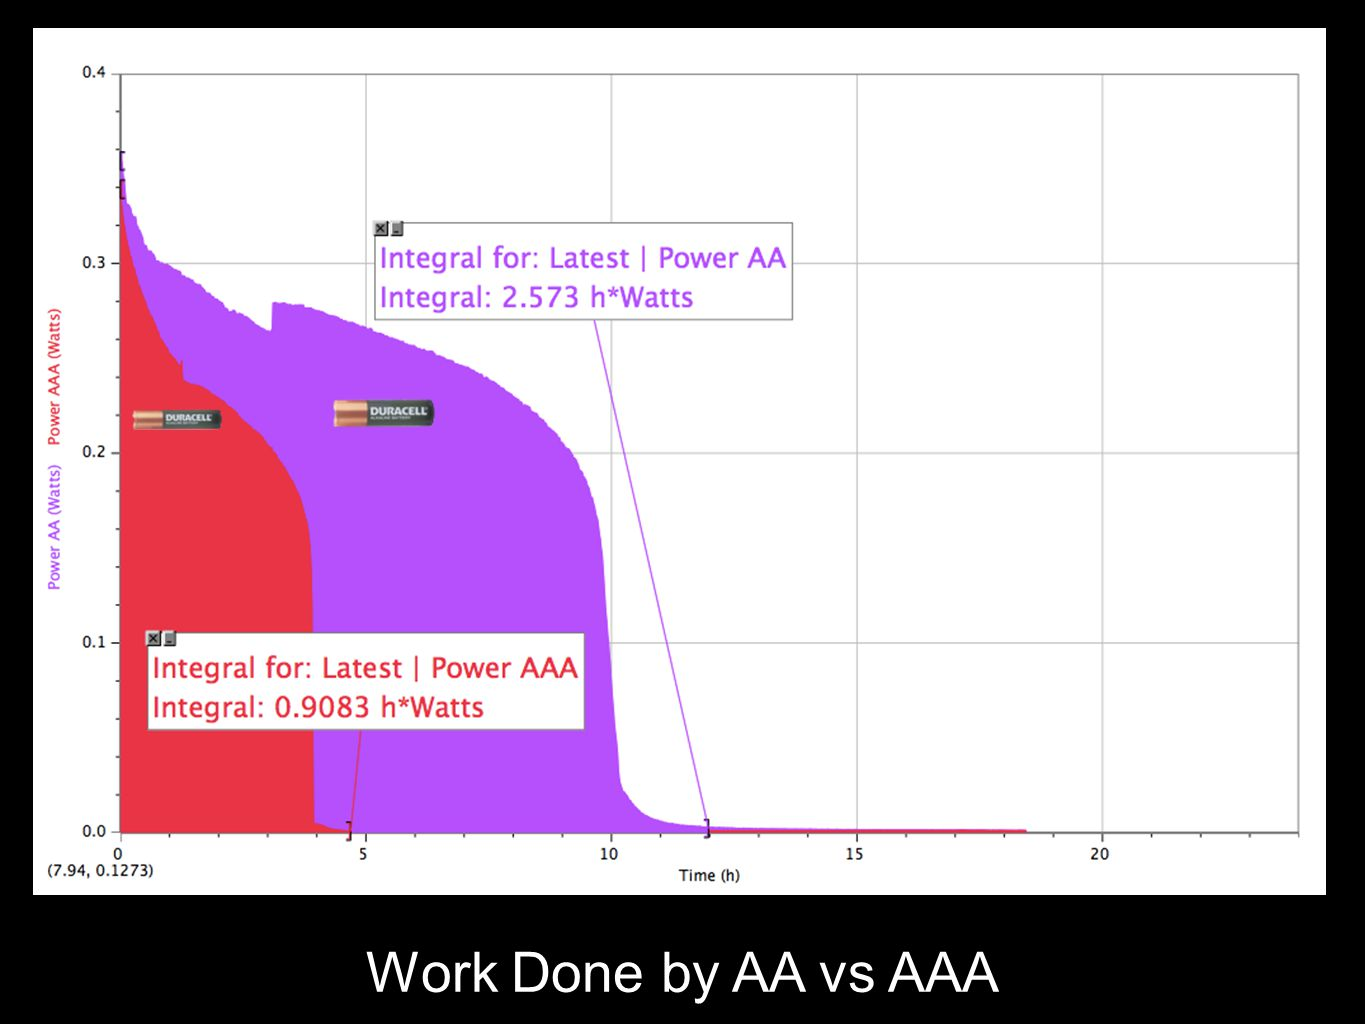 Work Done by AA vs AAA